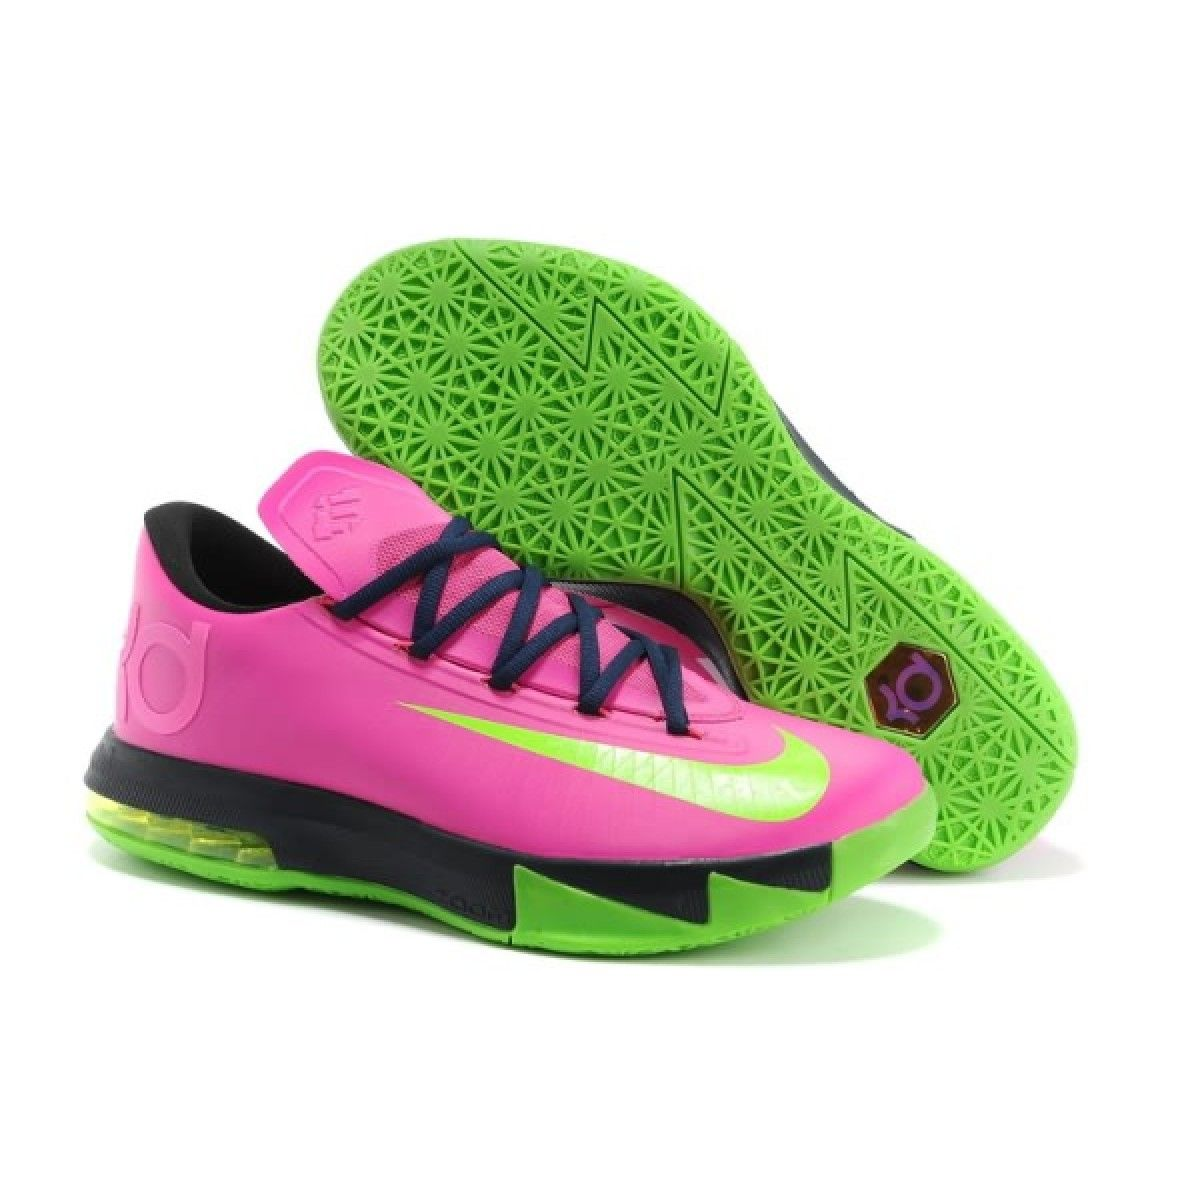 Nike Zoom Kevin Durant\u0027s KD VI N7 Pink/Black/Green Basketball shoes on sale  for USA